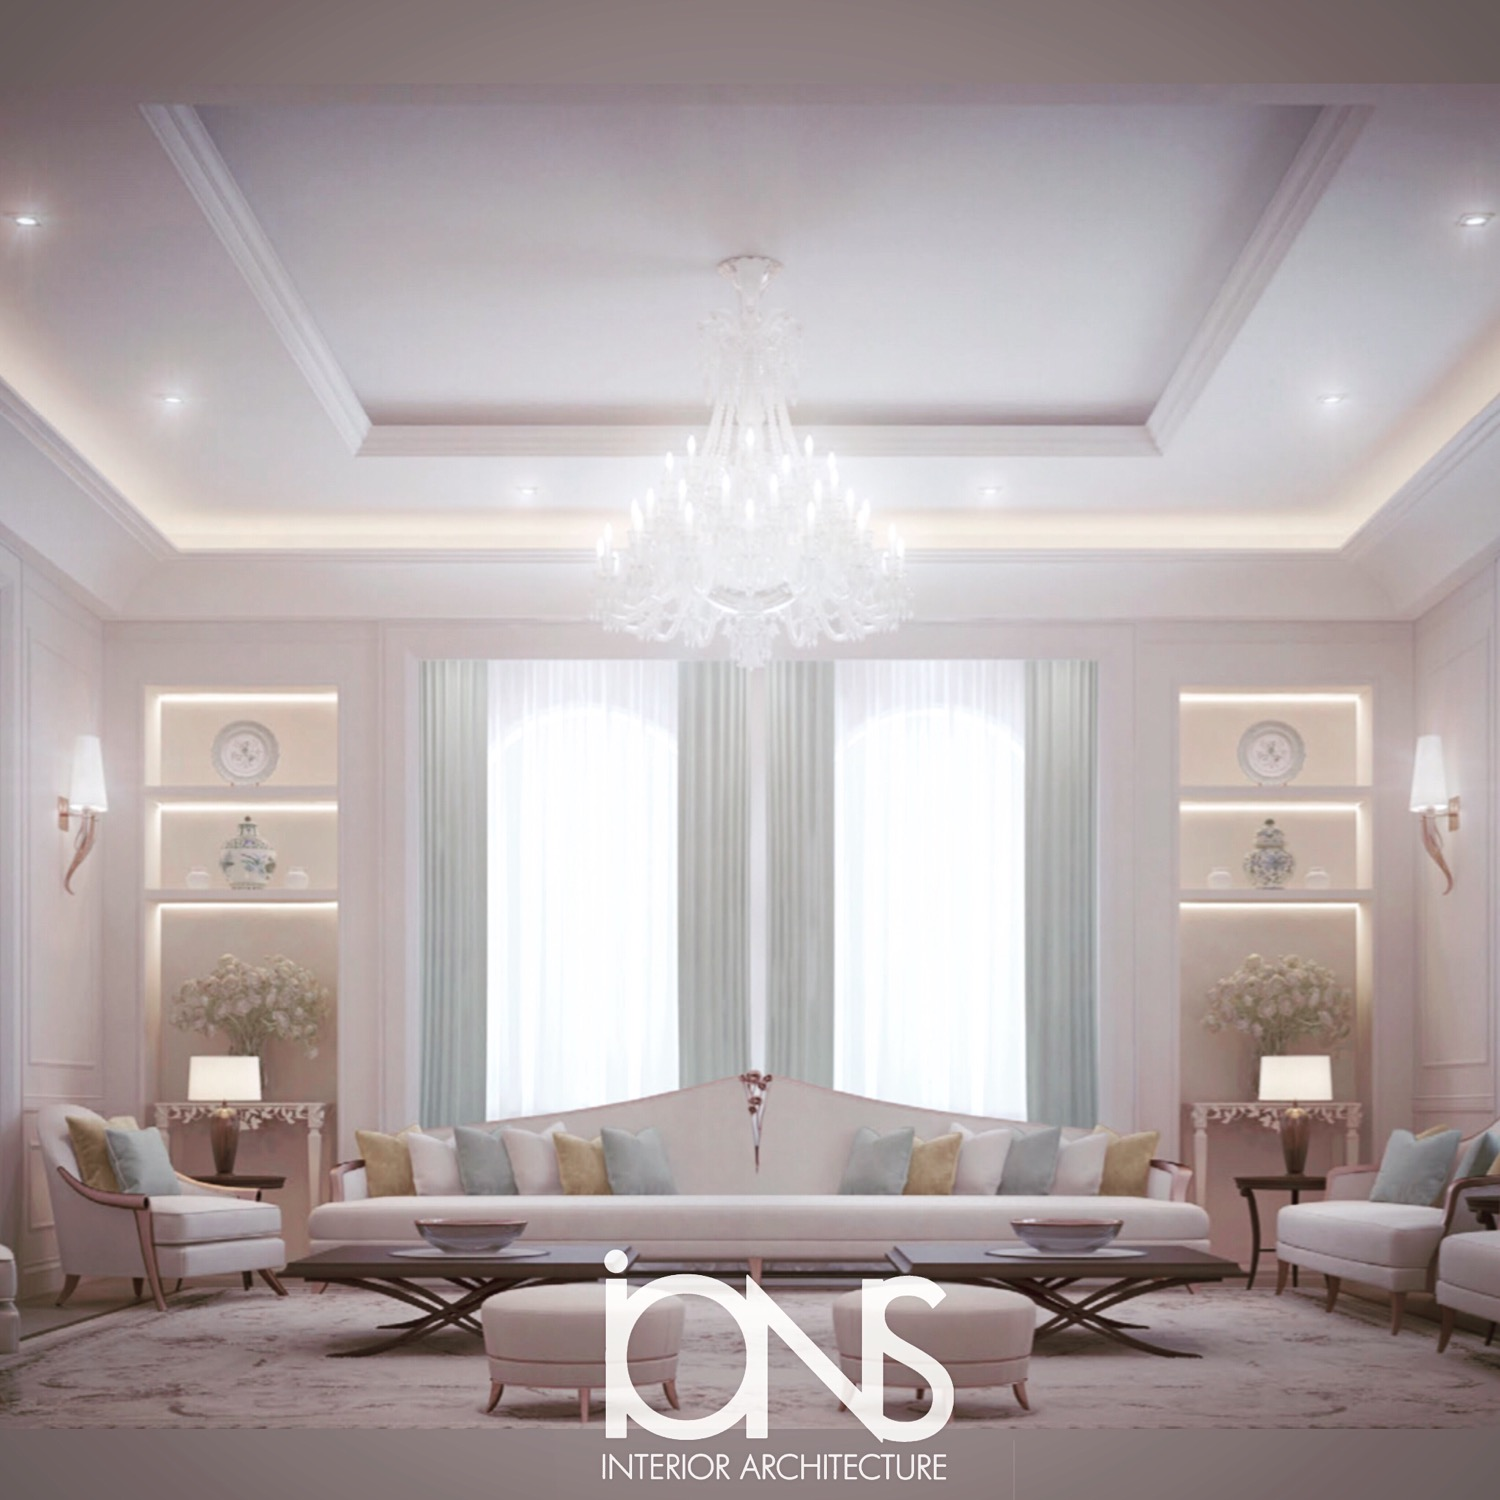 Ions Interior Design Dubai luxury interior design service by ions design dubai uae